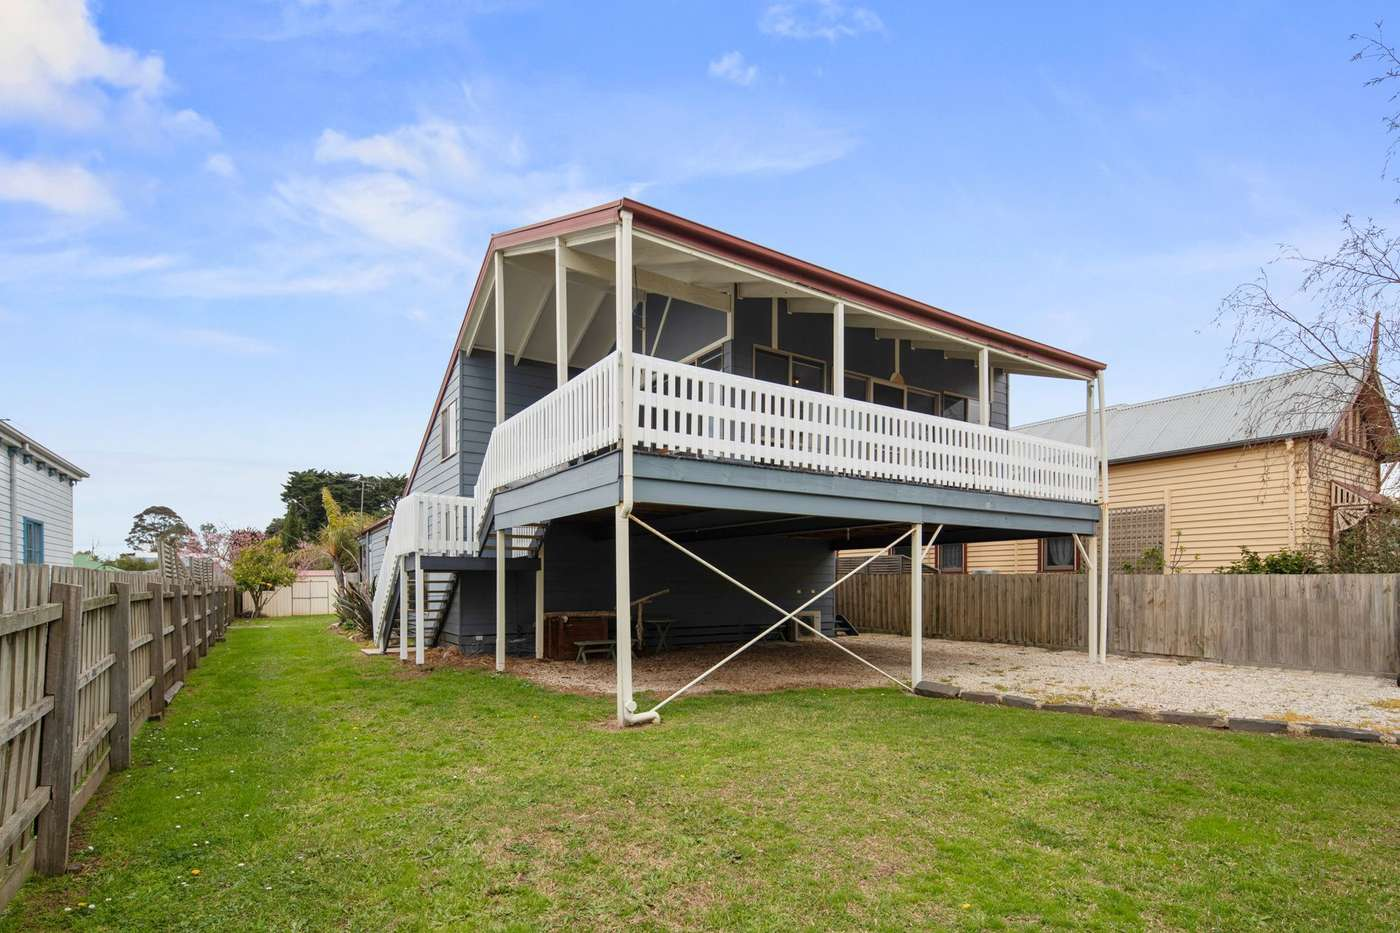 Main view of Homely house listing, 5 Carapooka Way, Cowes, VIC 3922